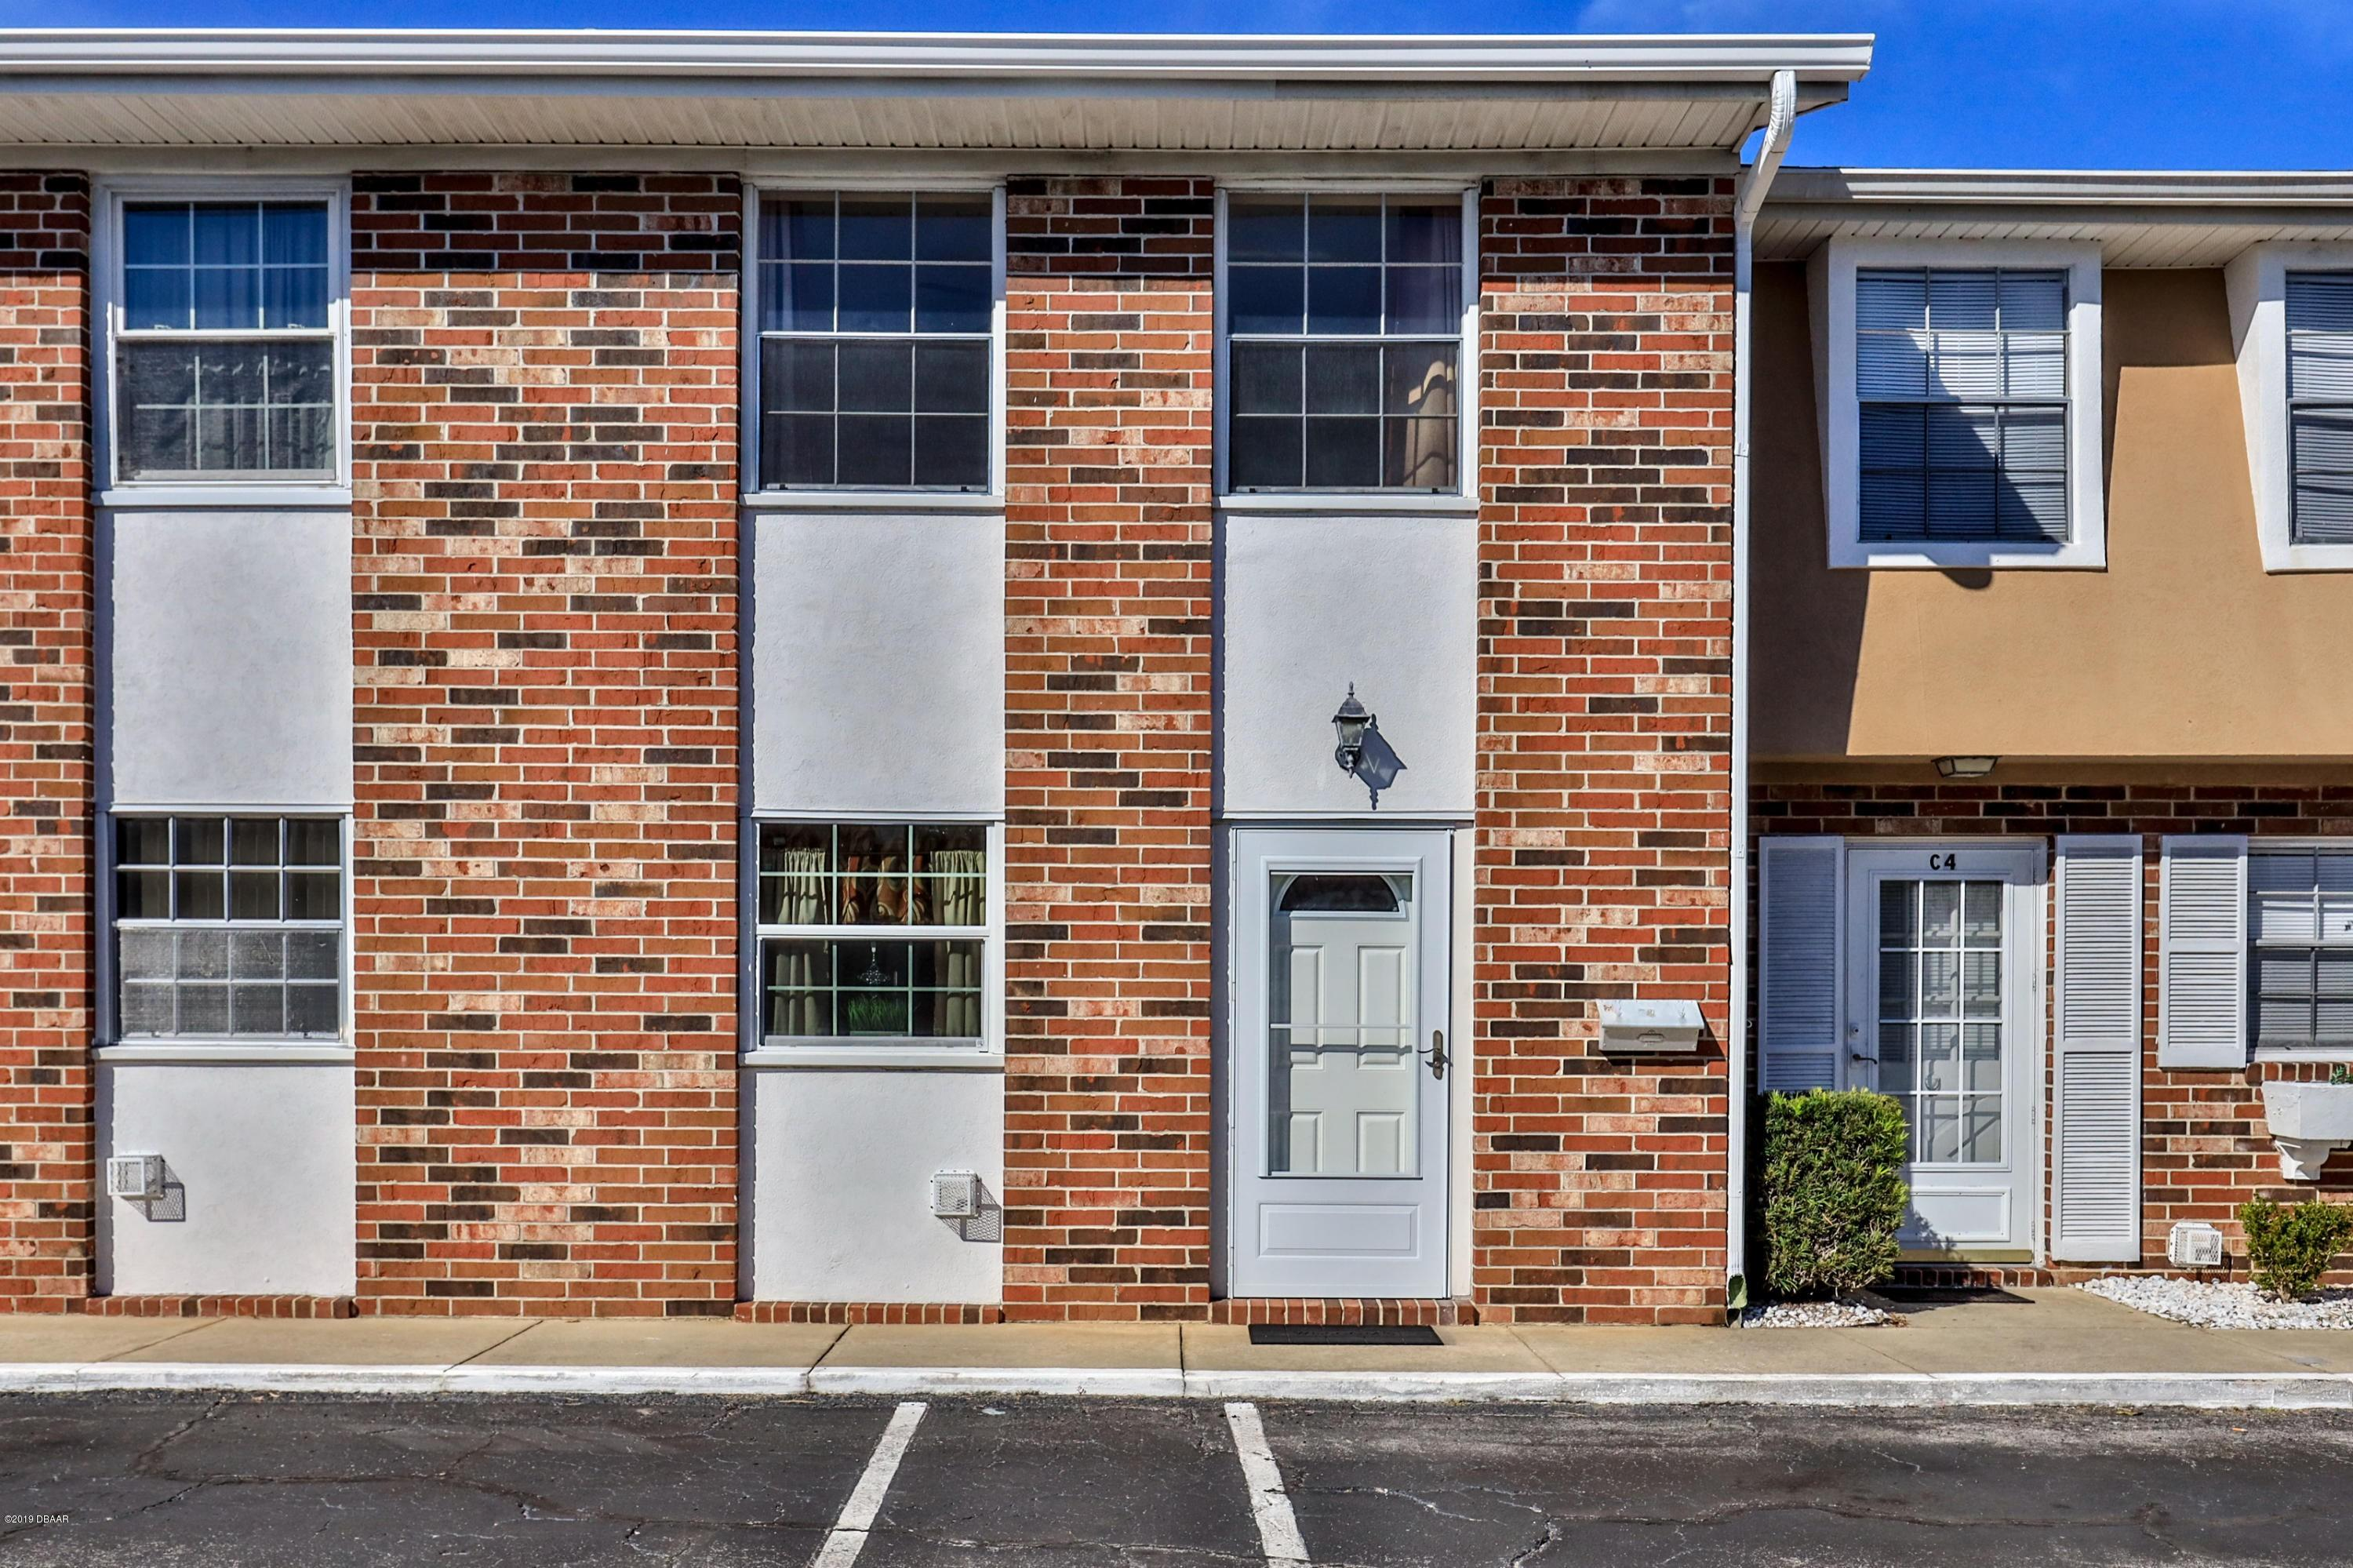 2200 S Palmetto Ave, one of homes for sale in South Daytona